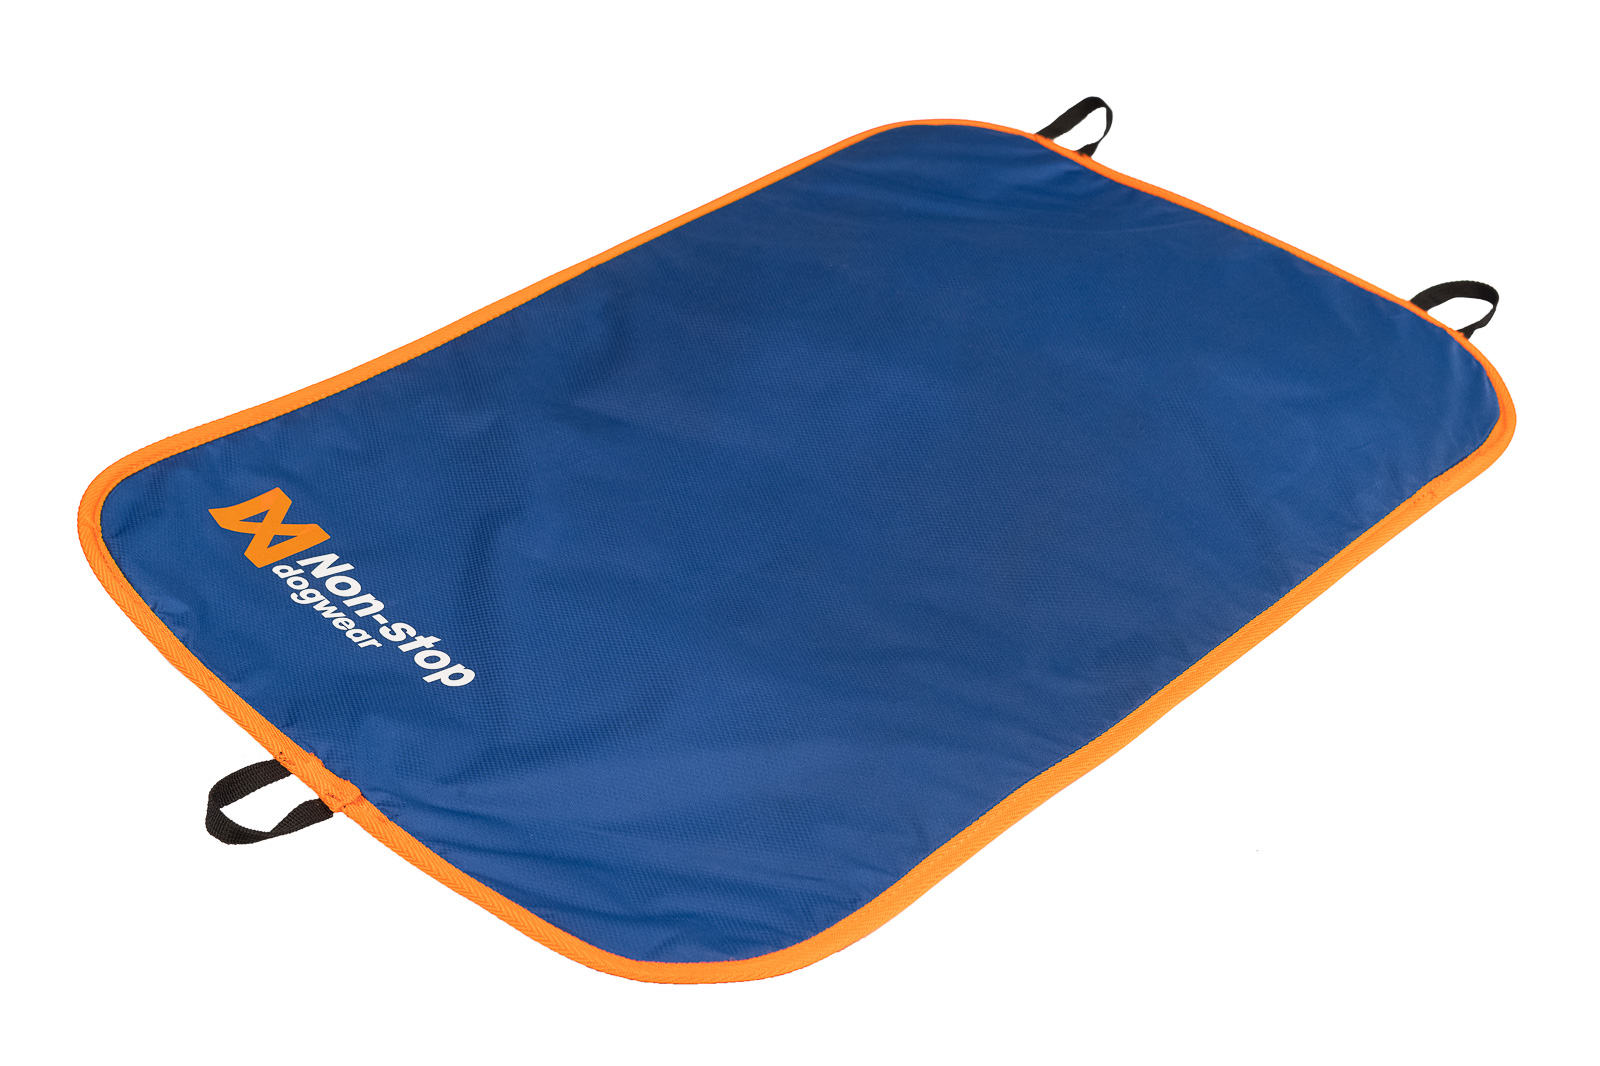 Musher Sleeping Mat